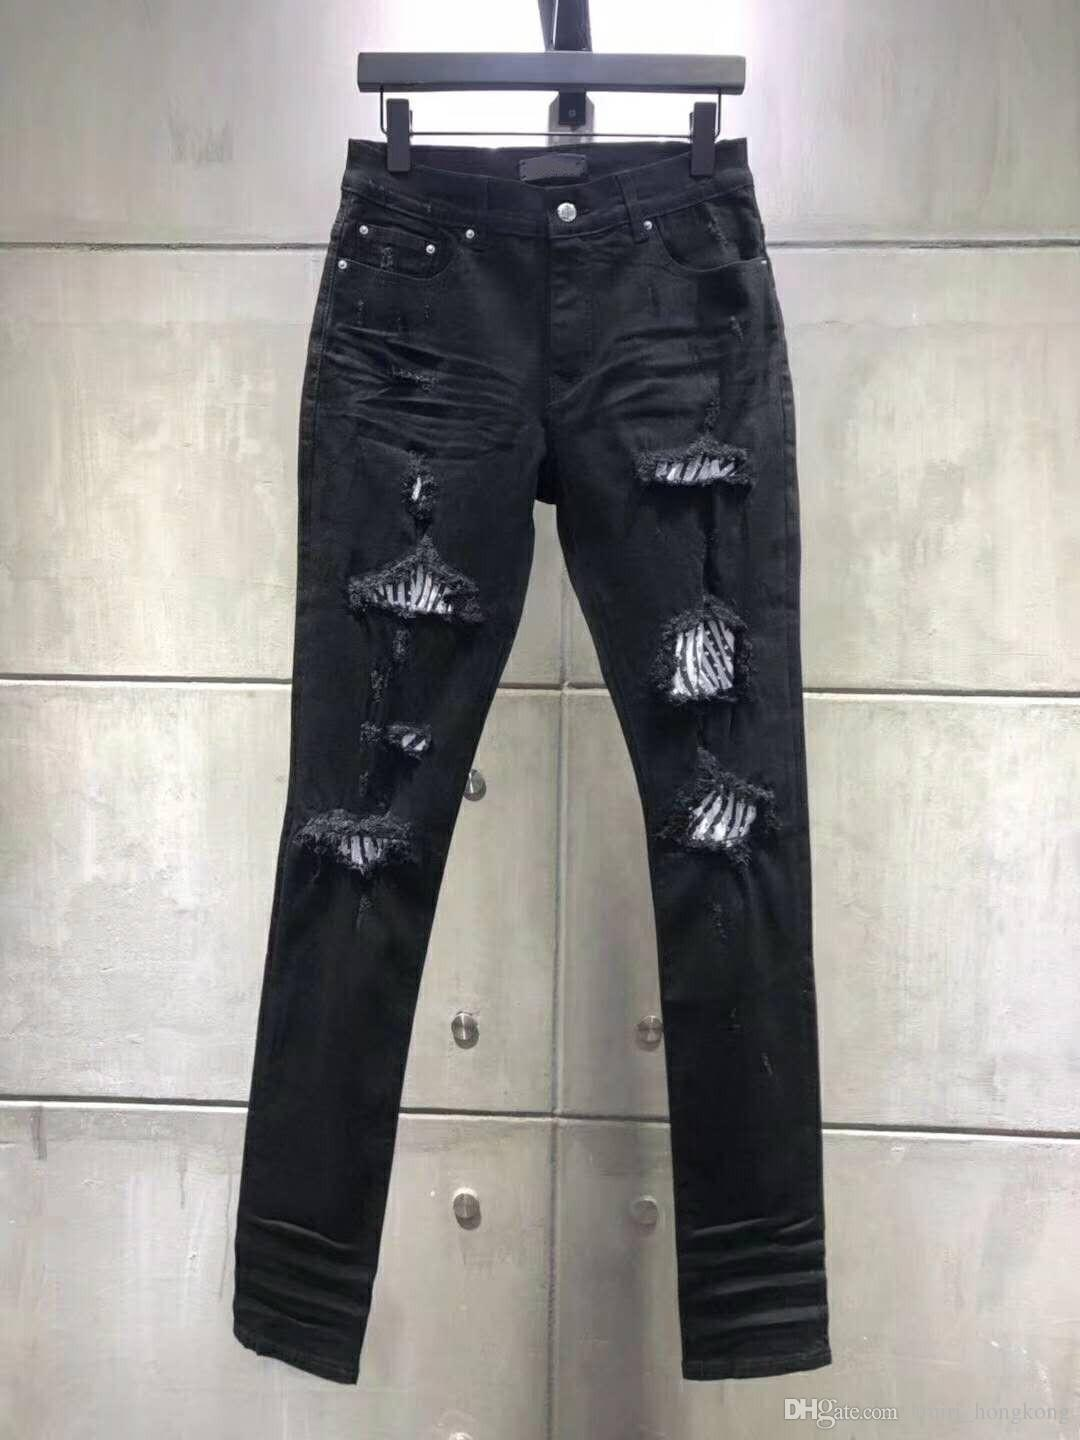 2018SS SOLID CLASSIC STYLE FASHION STRAIGHT FIT ARRIVAL BIKER BLUE JEANS PANTS DISTRESSED Water diamond zebra stripes TOP QUALITY JEANS